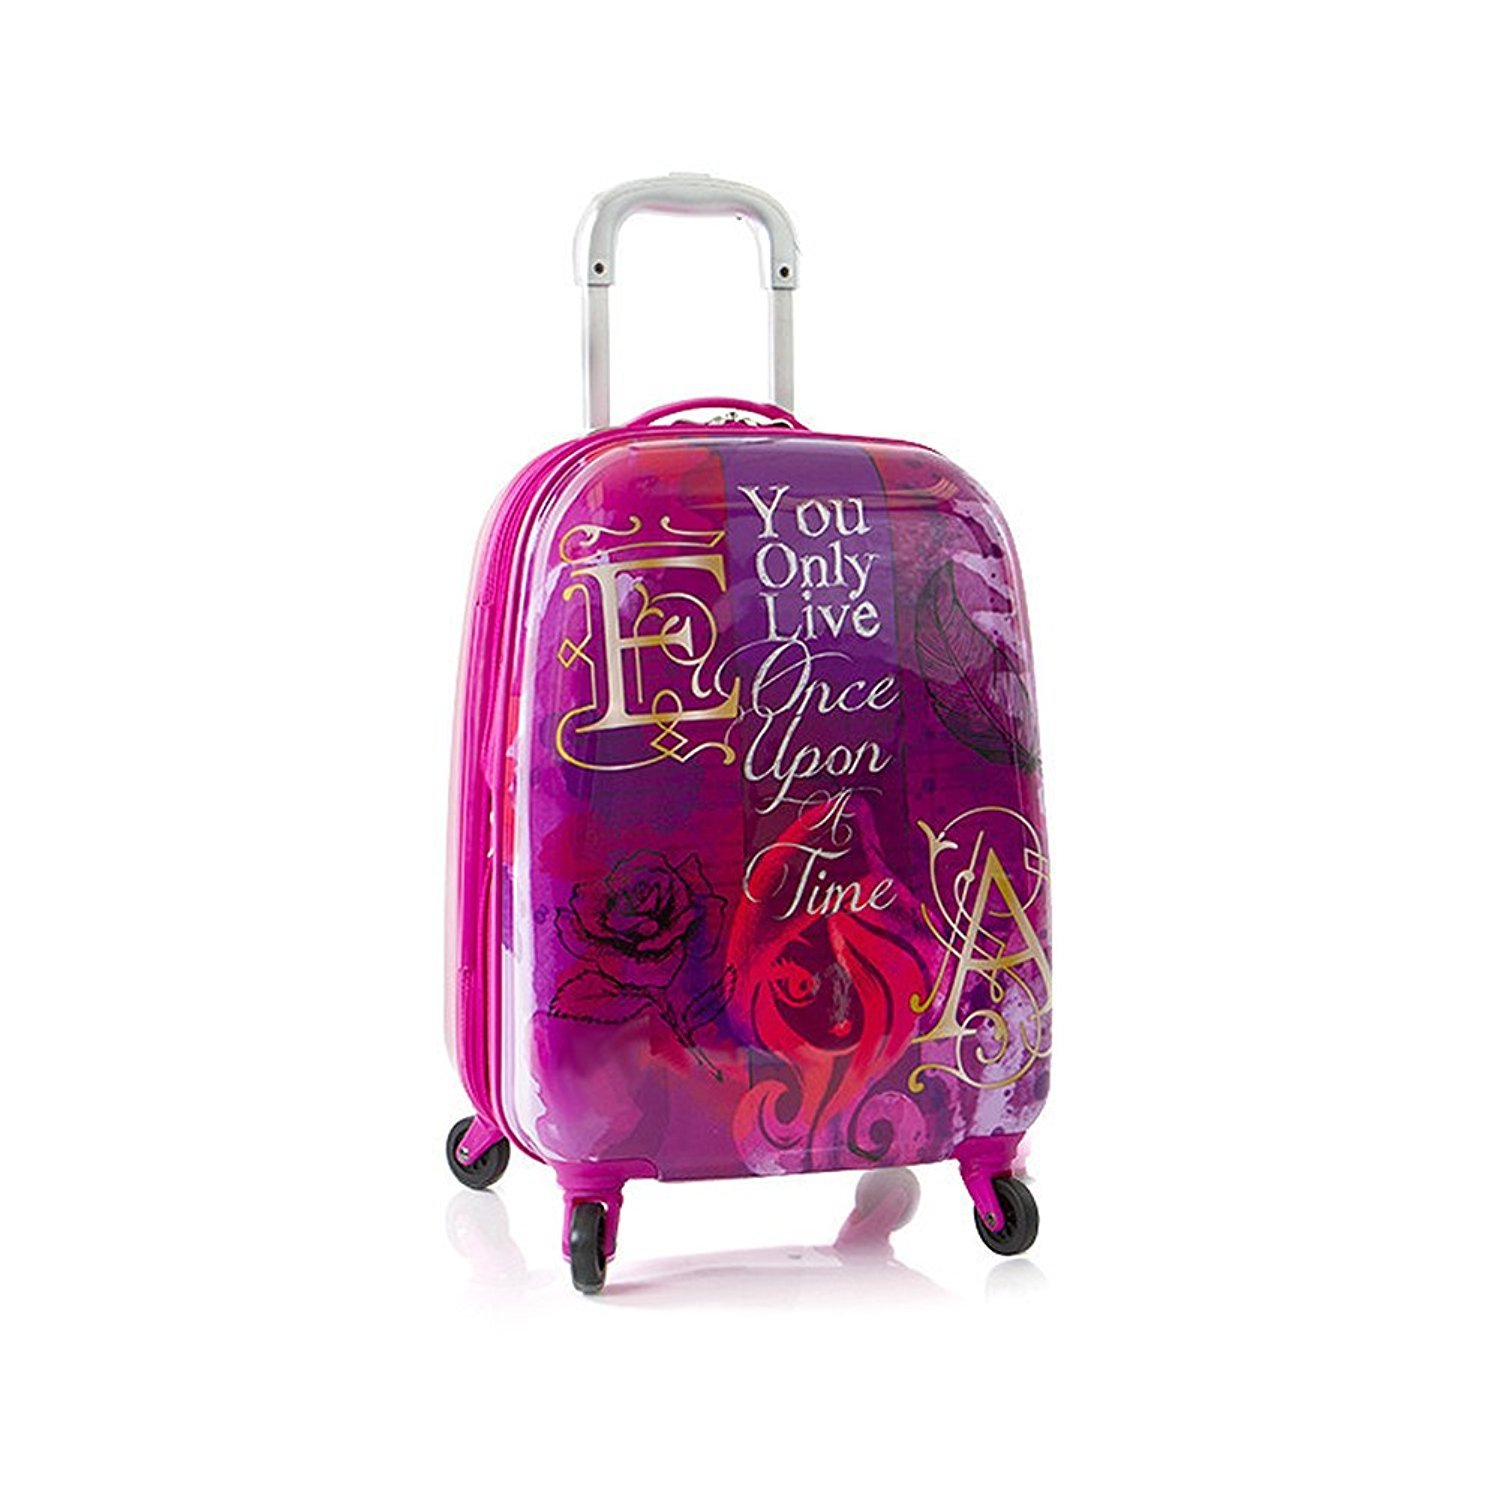 Heys Mattel Tween Ever After High 20'' Spinner Luggage carry-on